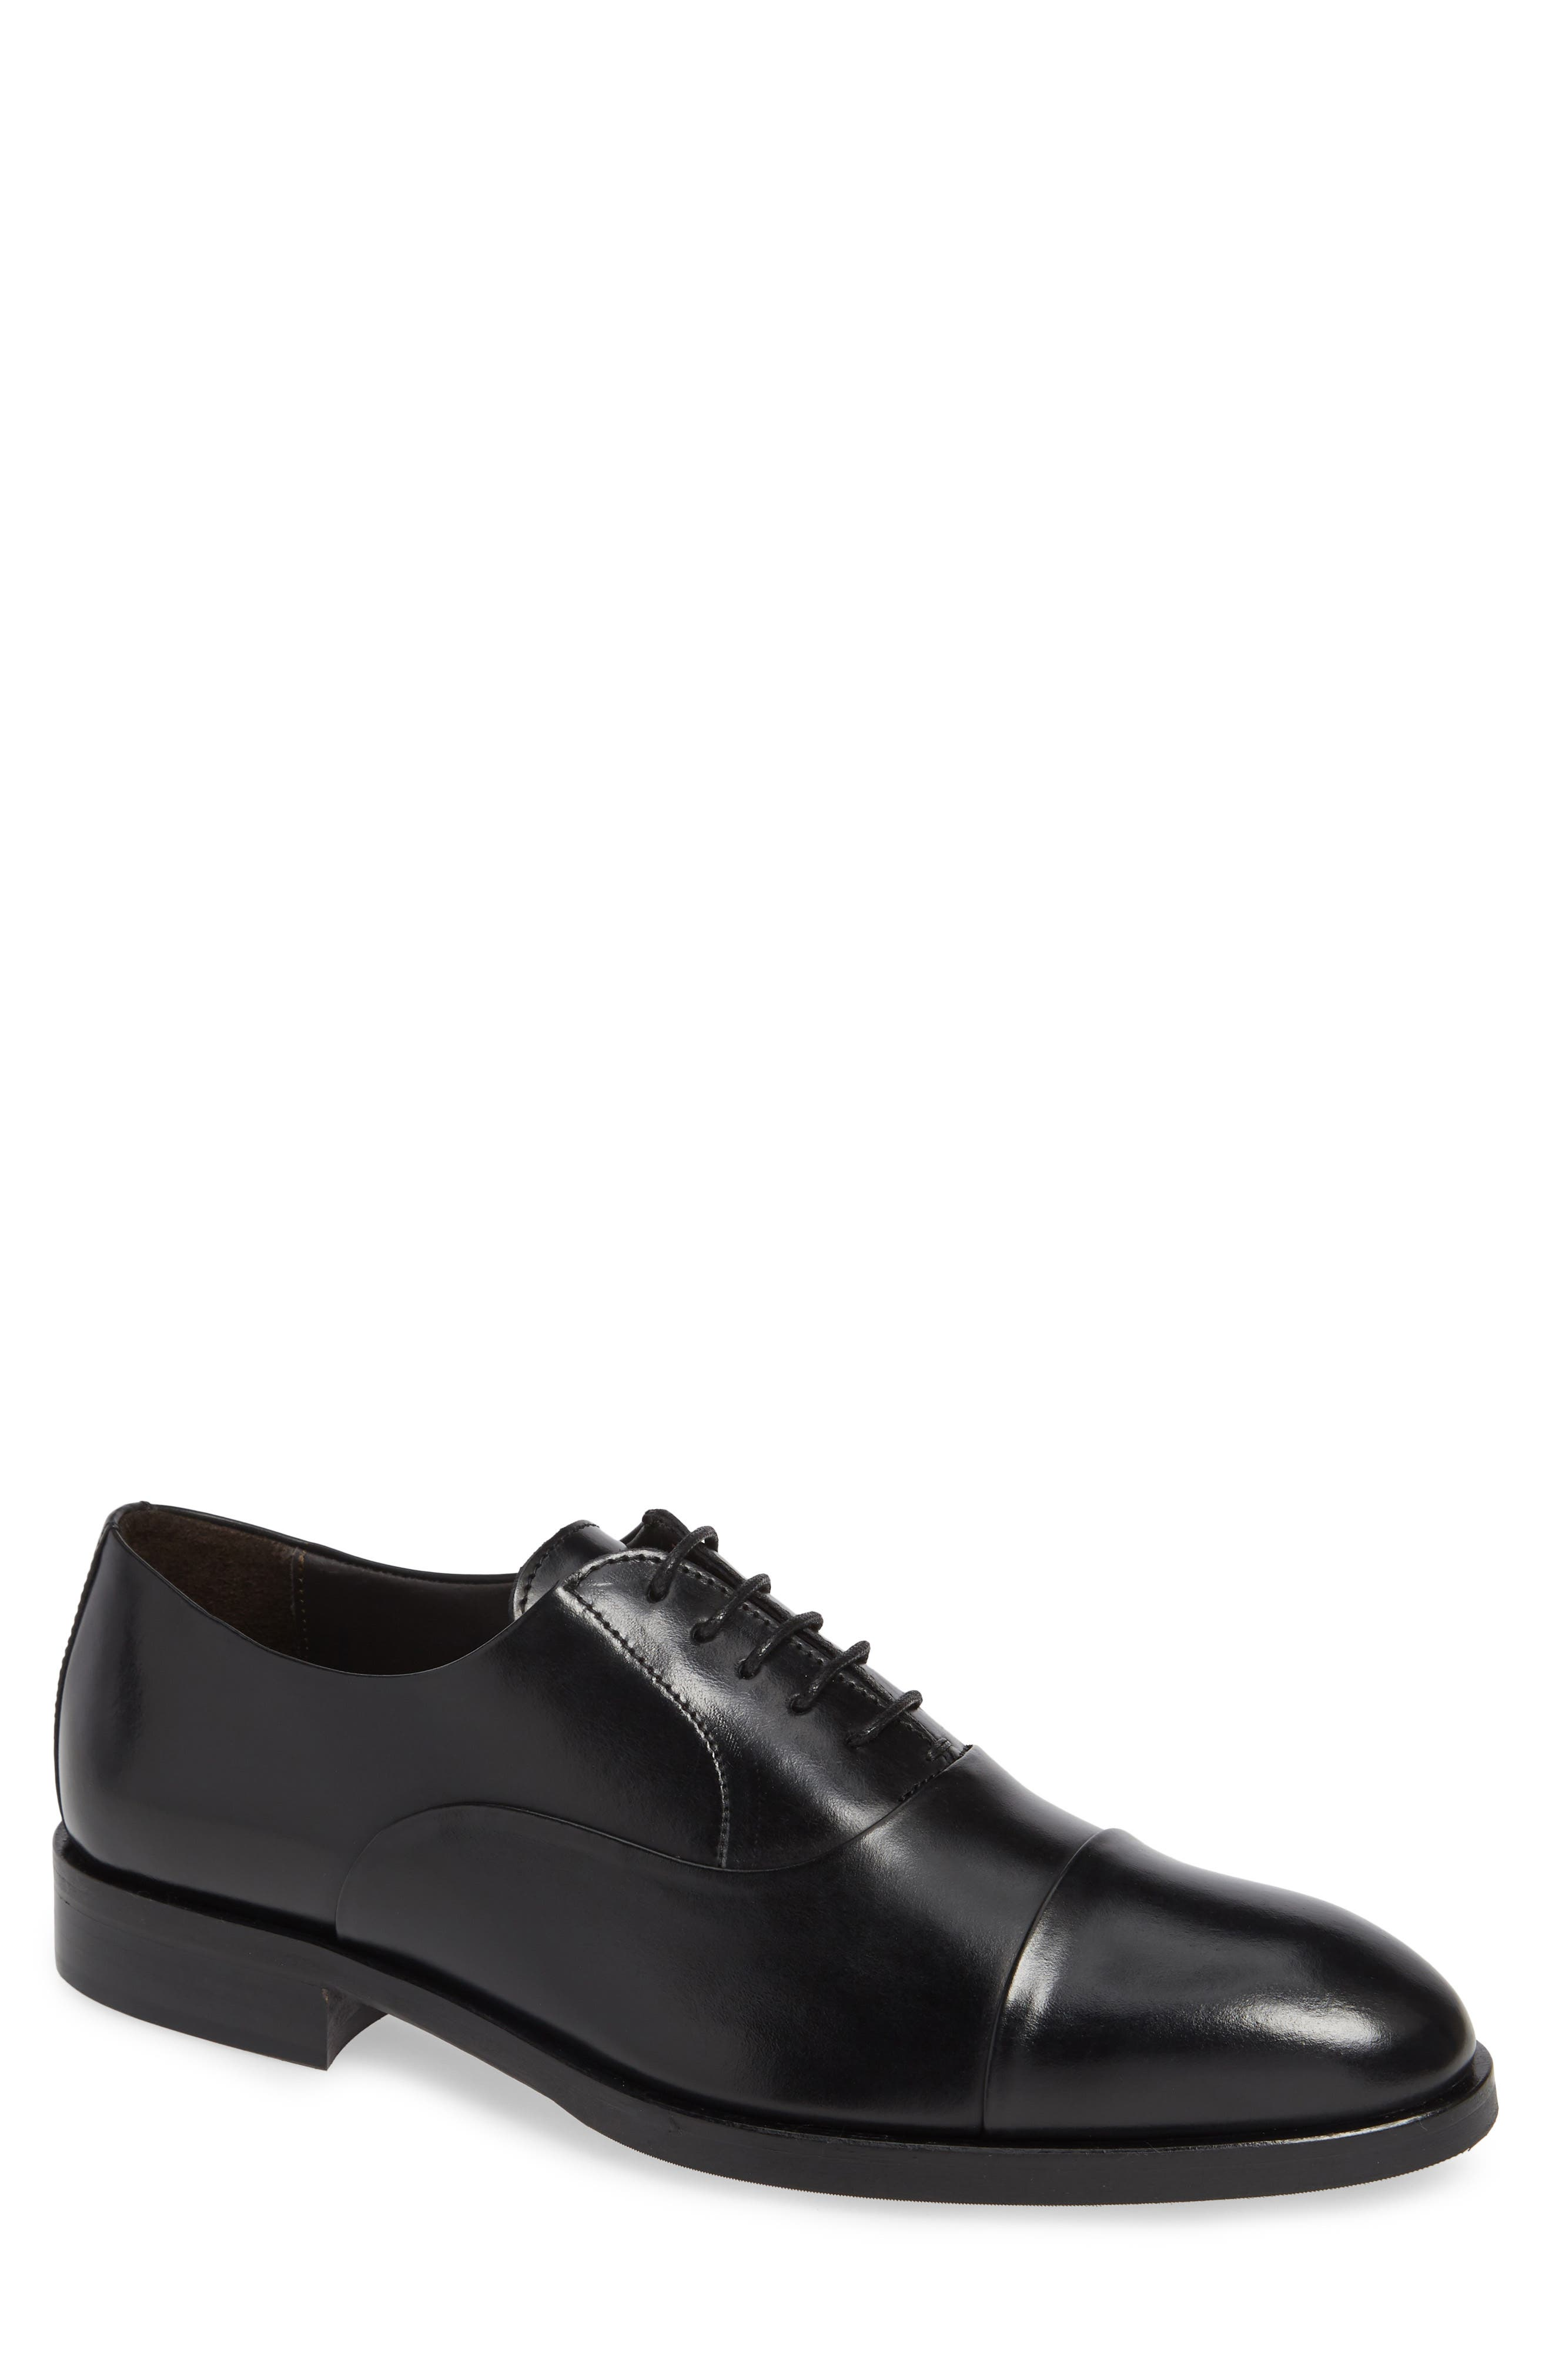 TO BOOT NEW YORK Men'S Hudson Leather Cap-Toe Oxfords in Black Leather